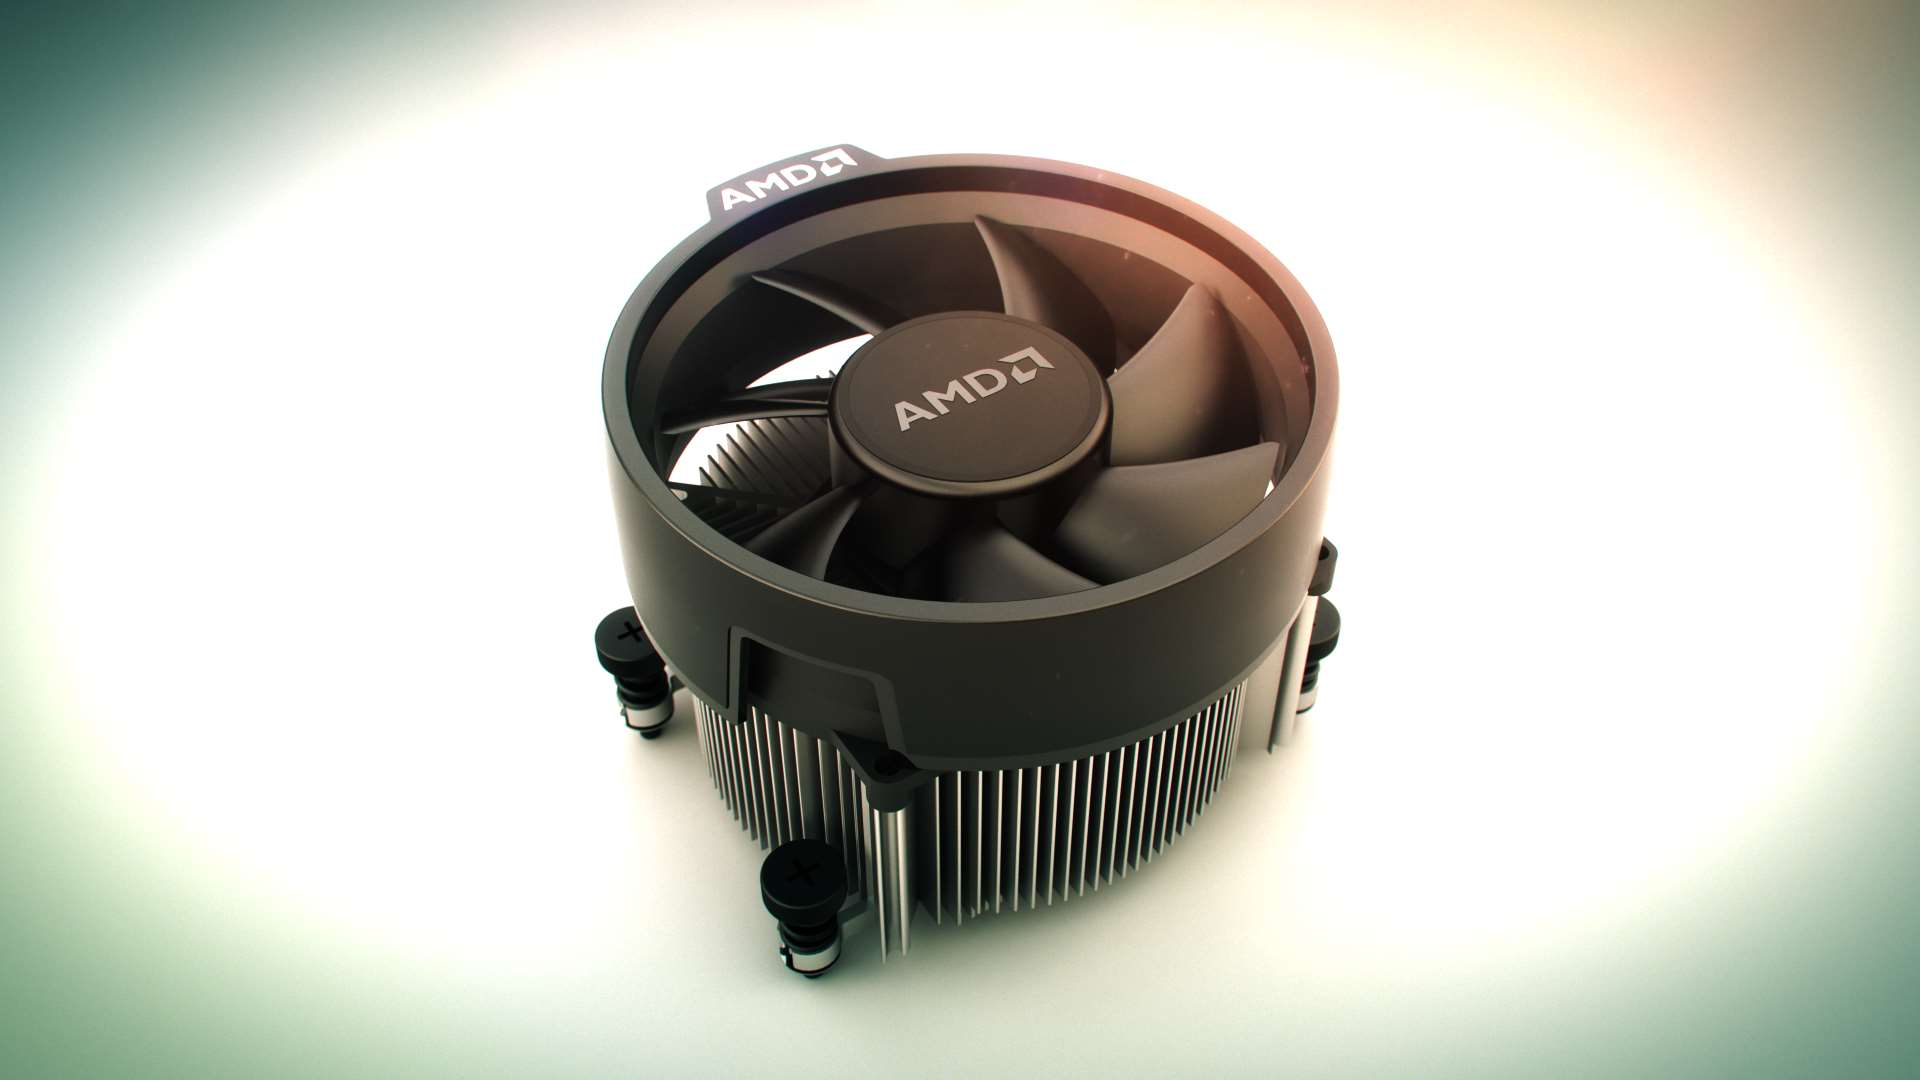 Amd S Wraith Spire Can Hit Liquid Cooled Cpu Chilling Performance With A 20 Fan Pcgamesn